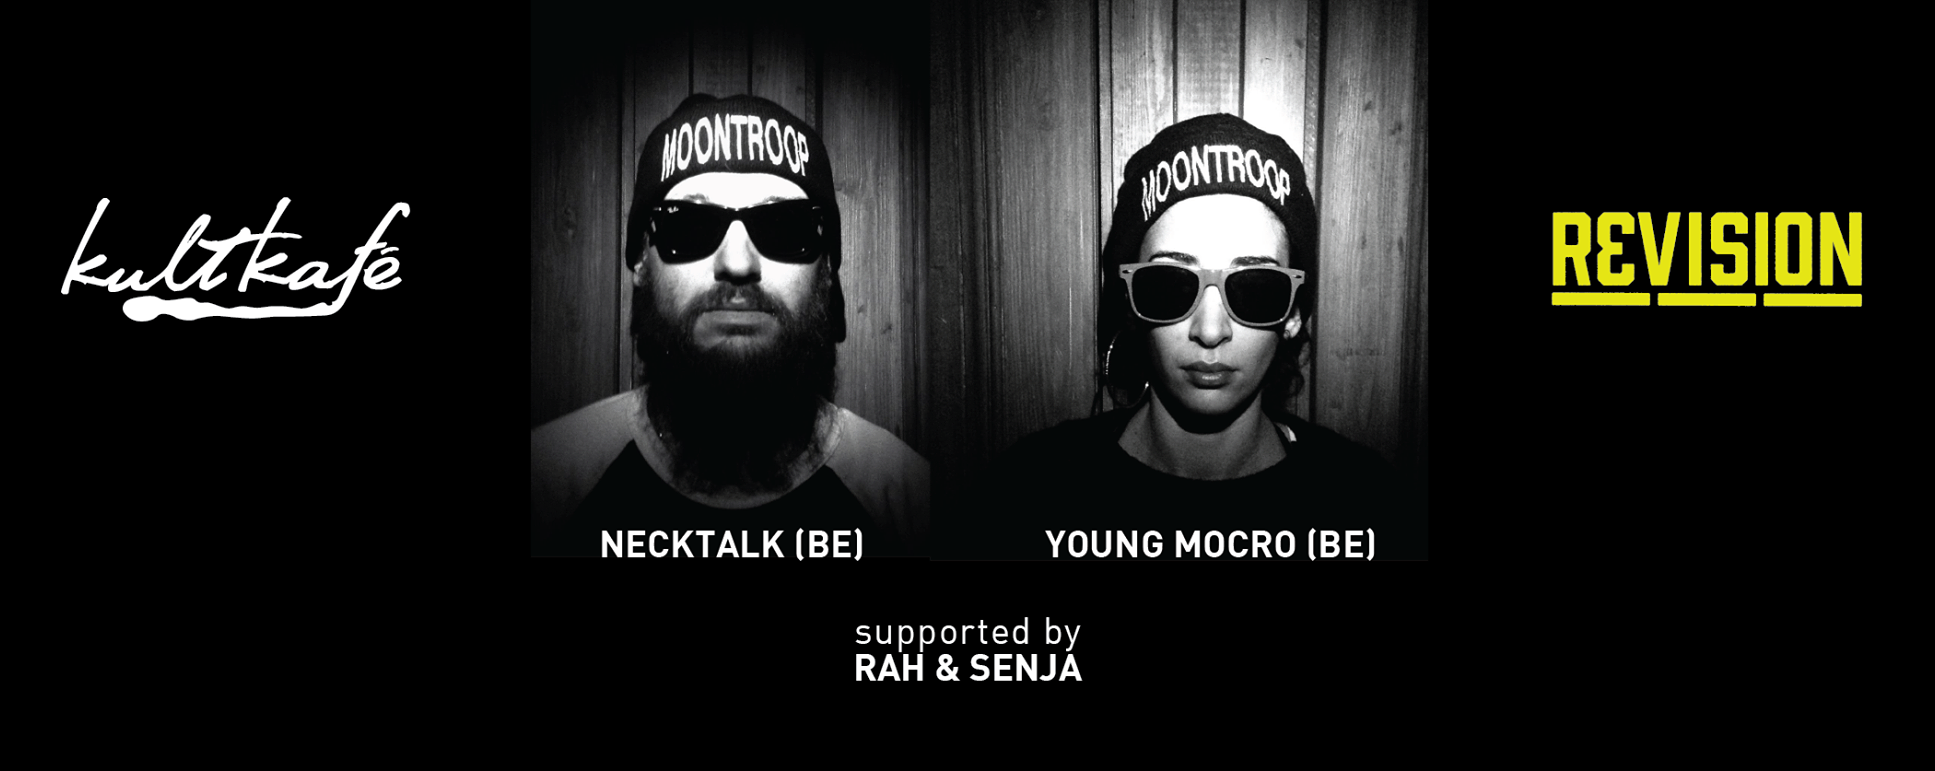 Revision Sessions: Young Mocro [Supafly BE] Necktalk [Moontroop BE] + RAH & SENJA [Revision SG]